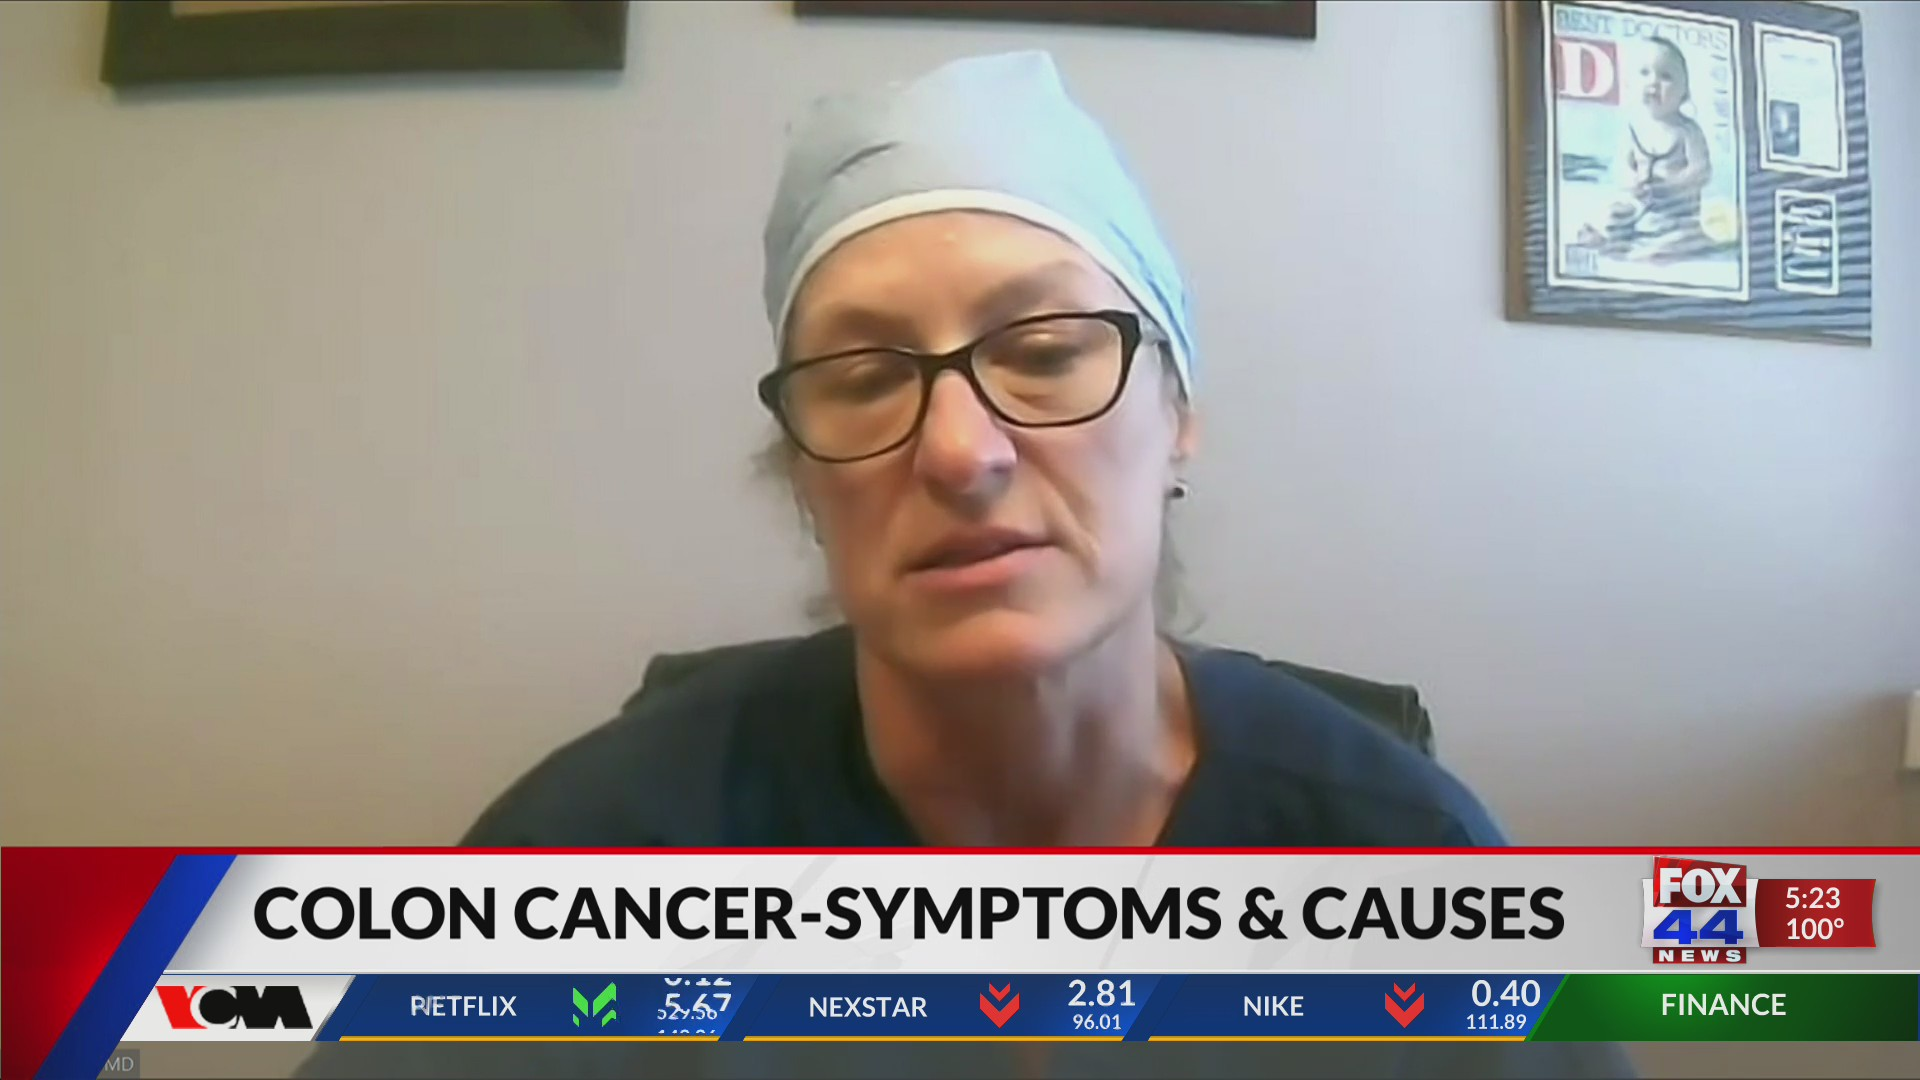 The Symptoms And Causes Of Colon Cancer Kwkt Fox 44